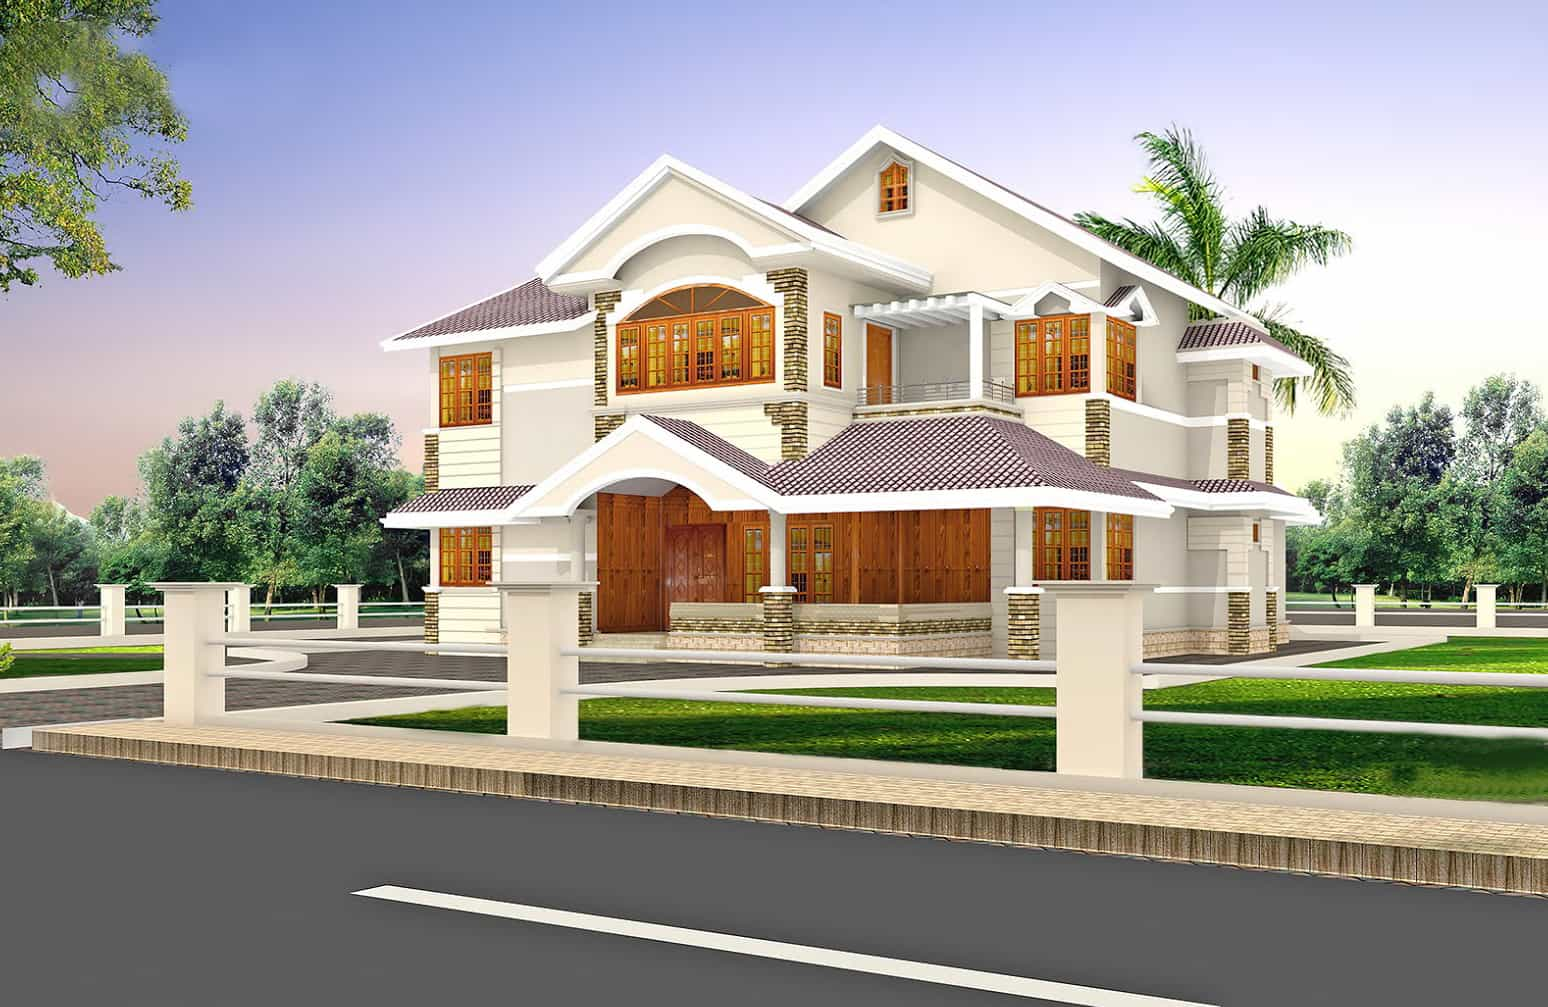 4bhk house plans keralahouseplanner - Home design d apk ...